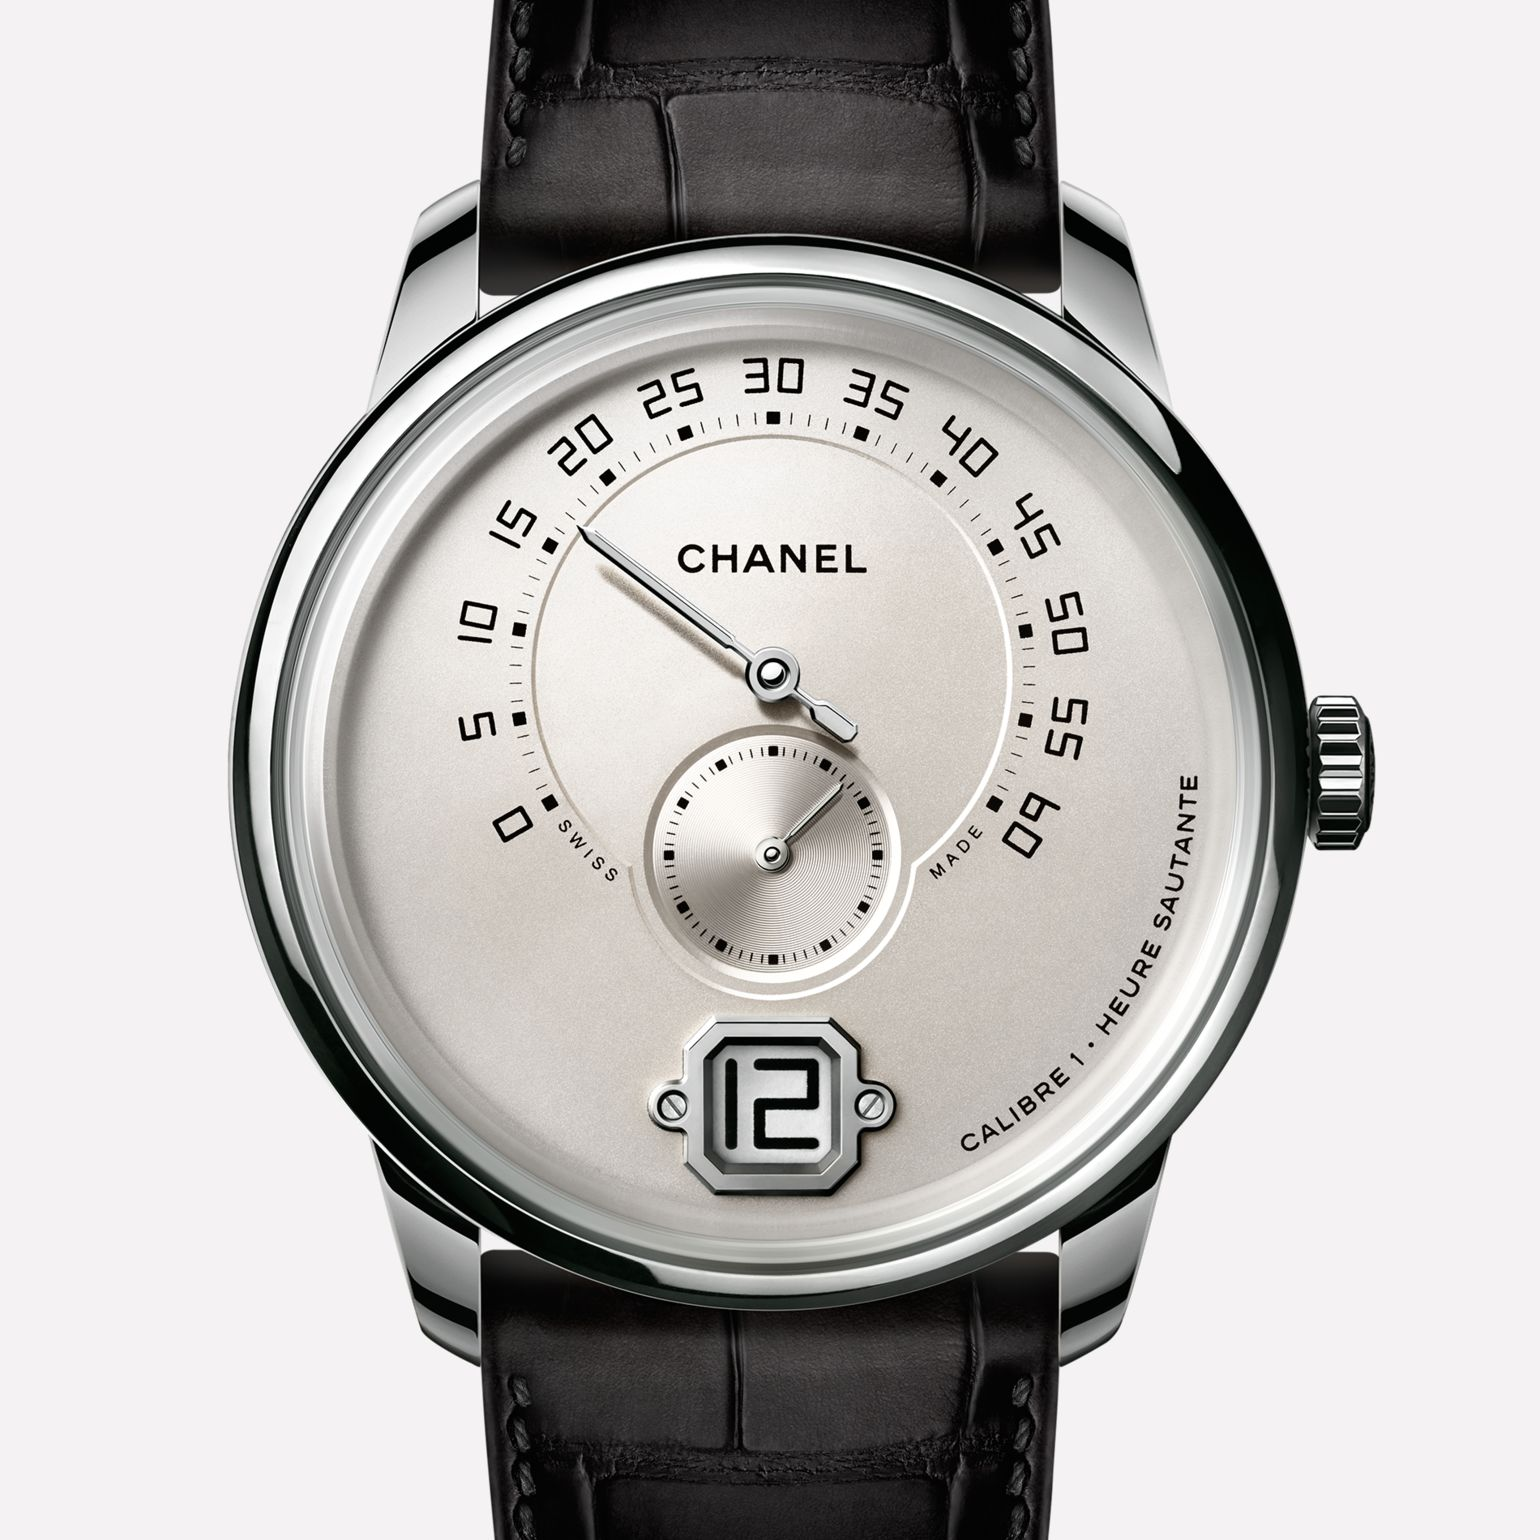 Monsieur Watch White gold, ivory dial with jumping hour, 240° retrograde minute and small second counter